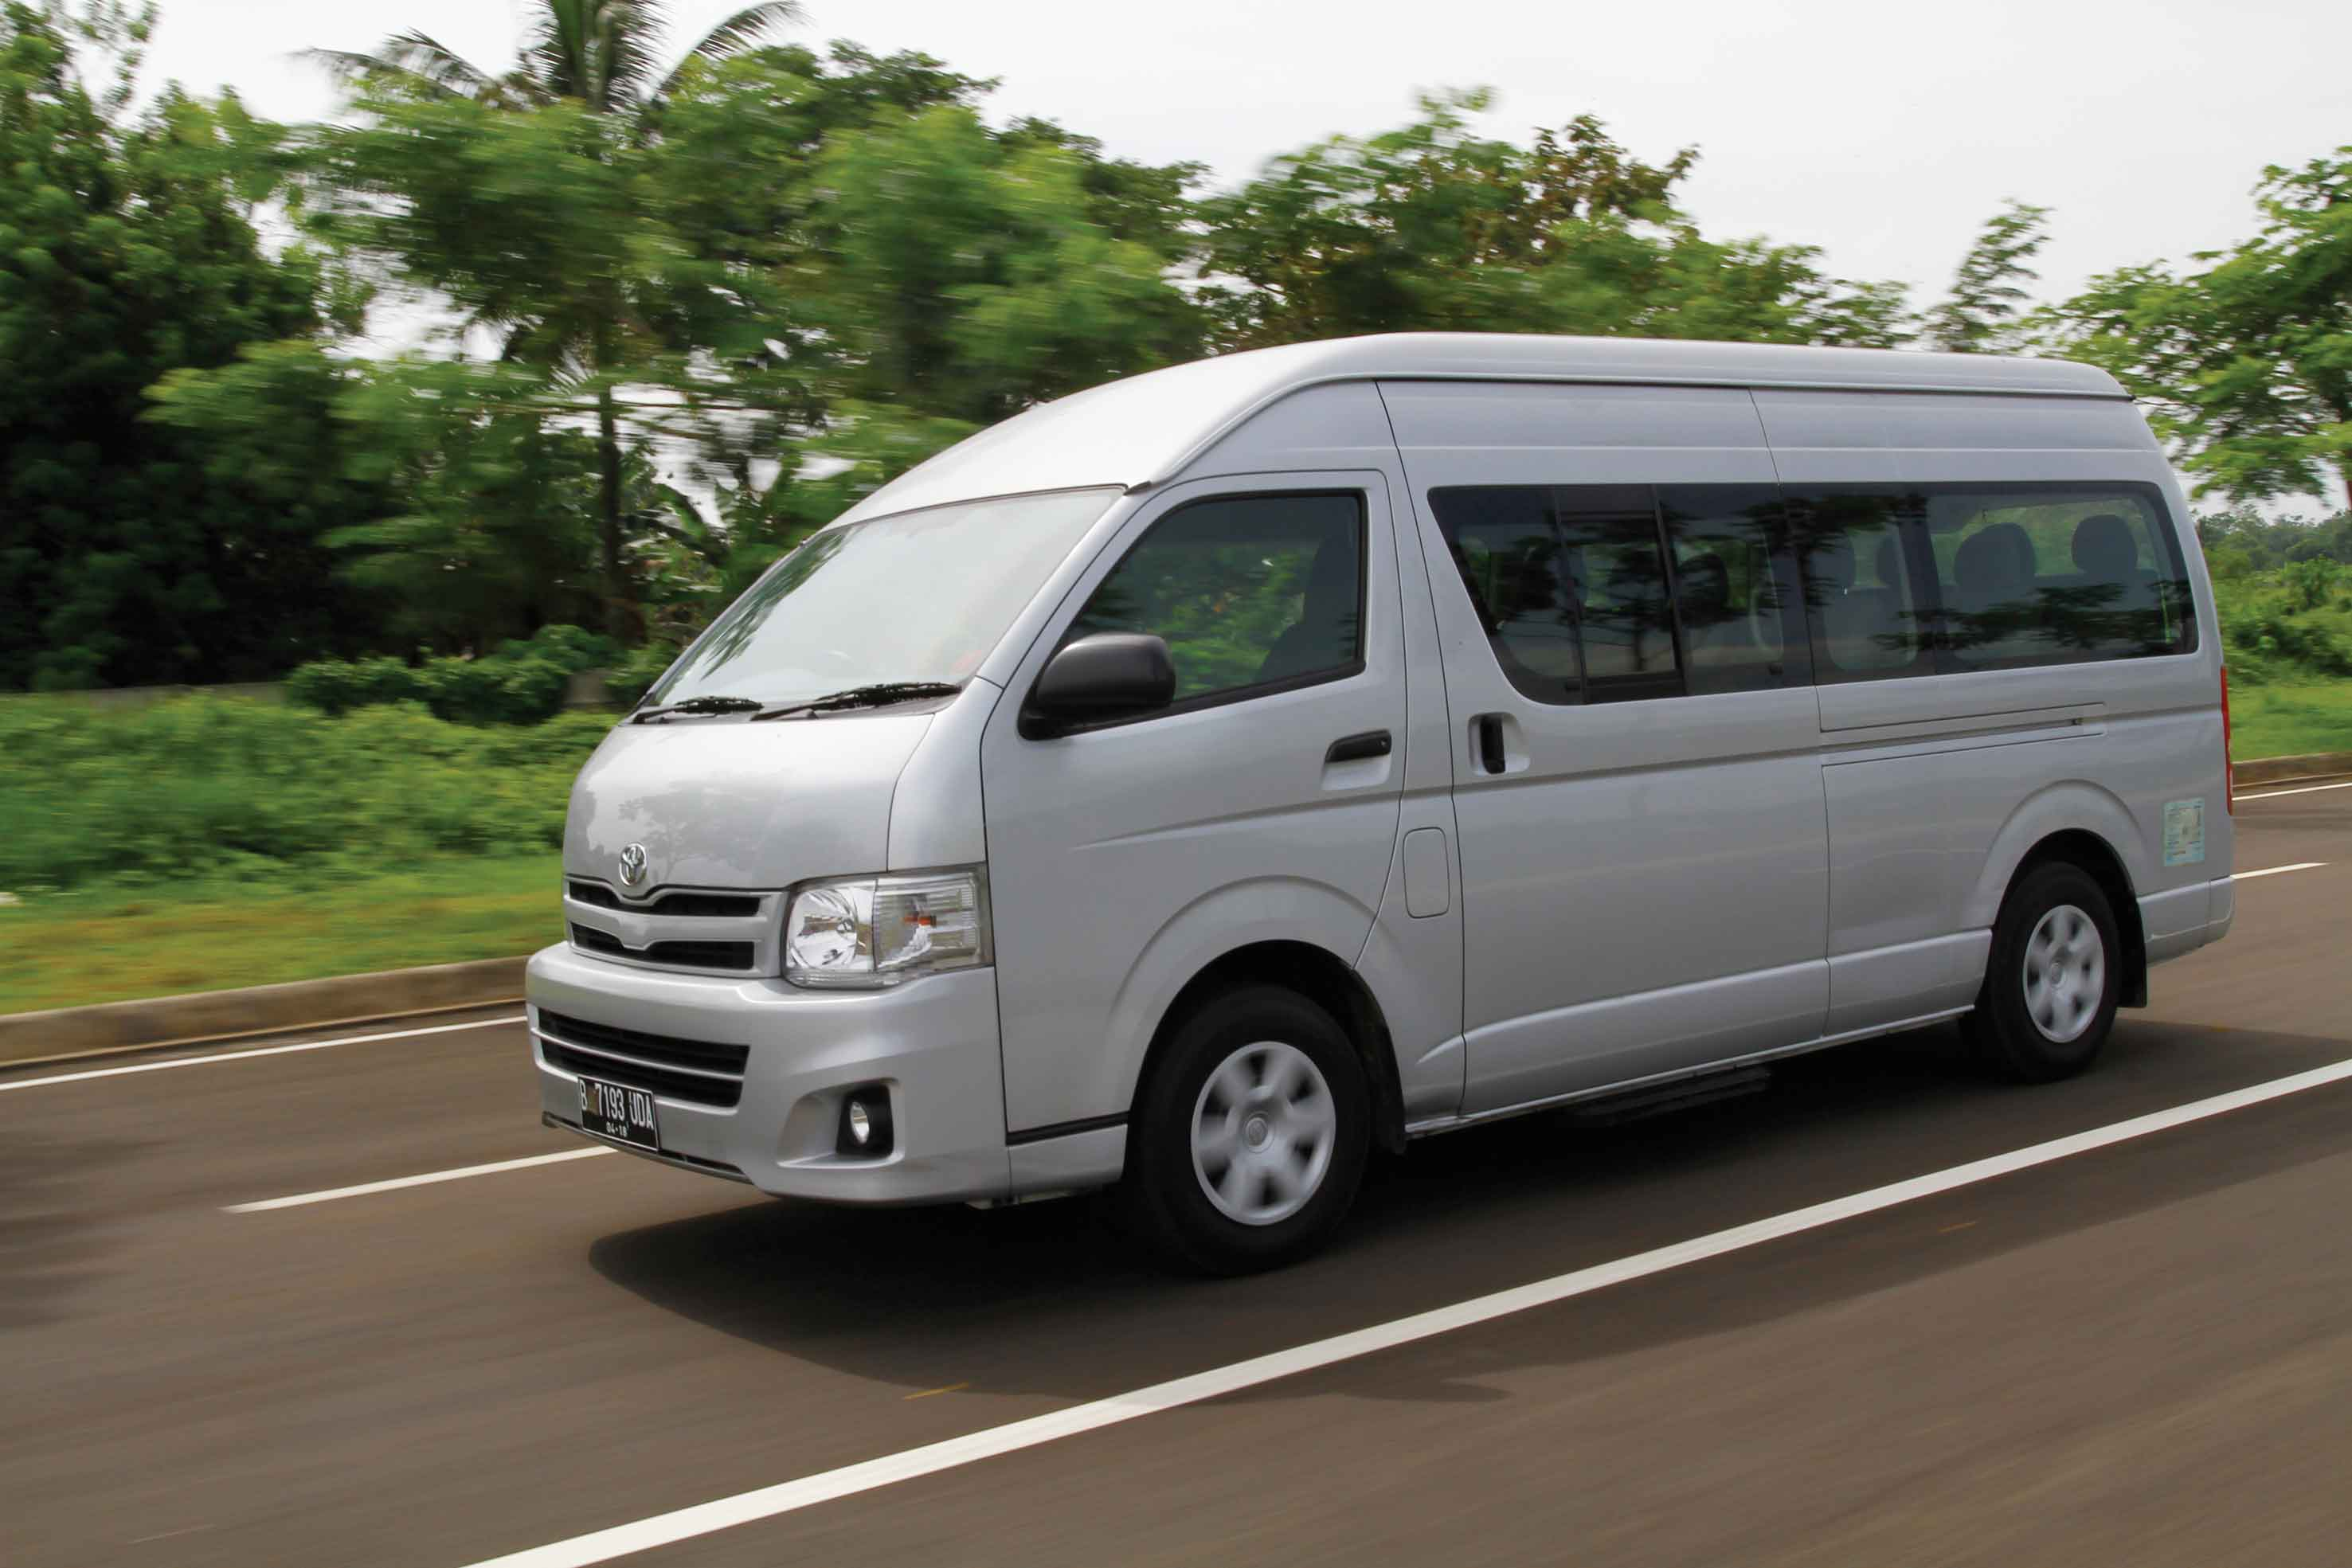 ?n=autocar-indonesia%2Fcontent%2F20150709013611-hiace2